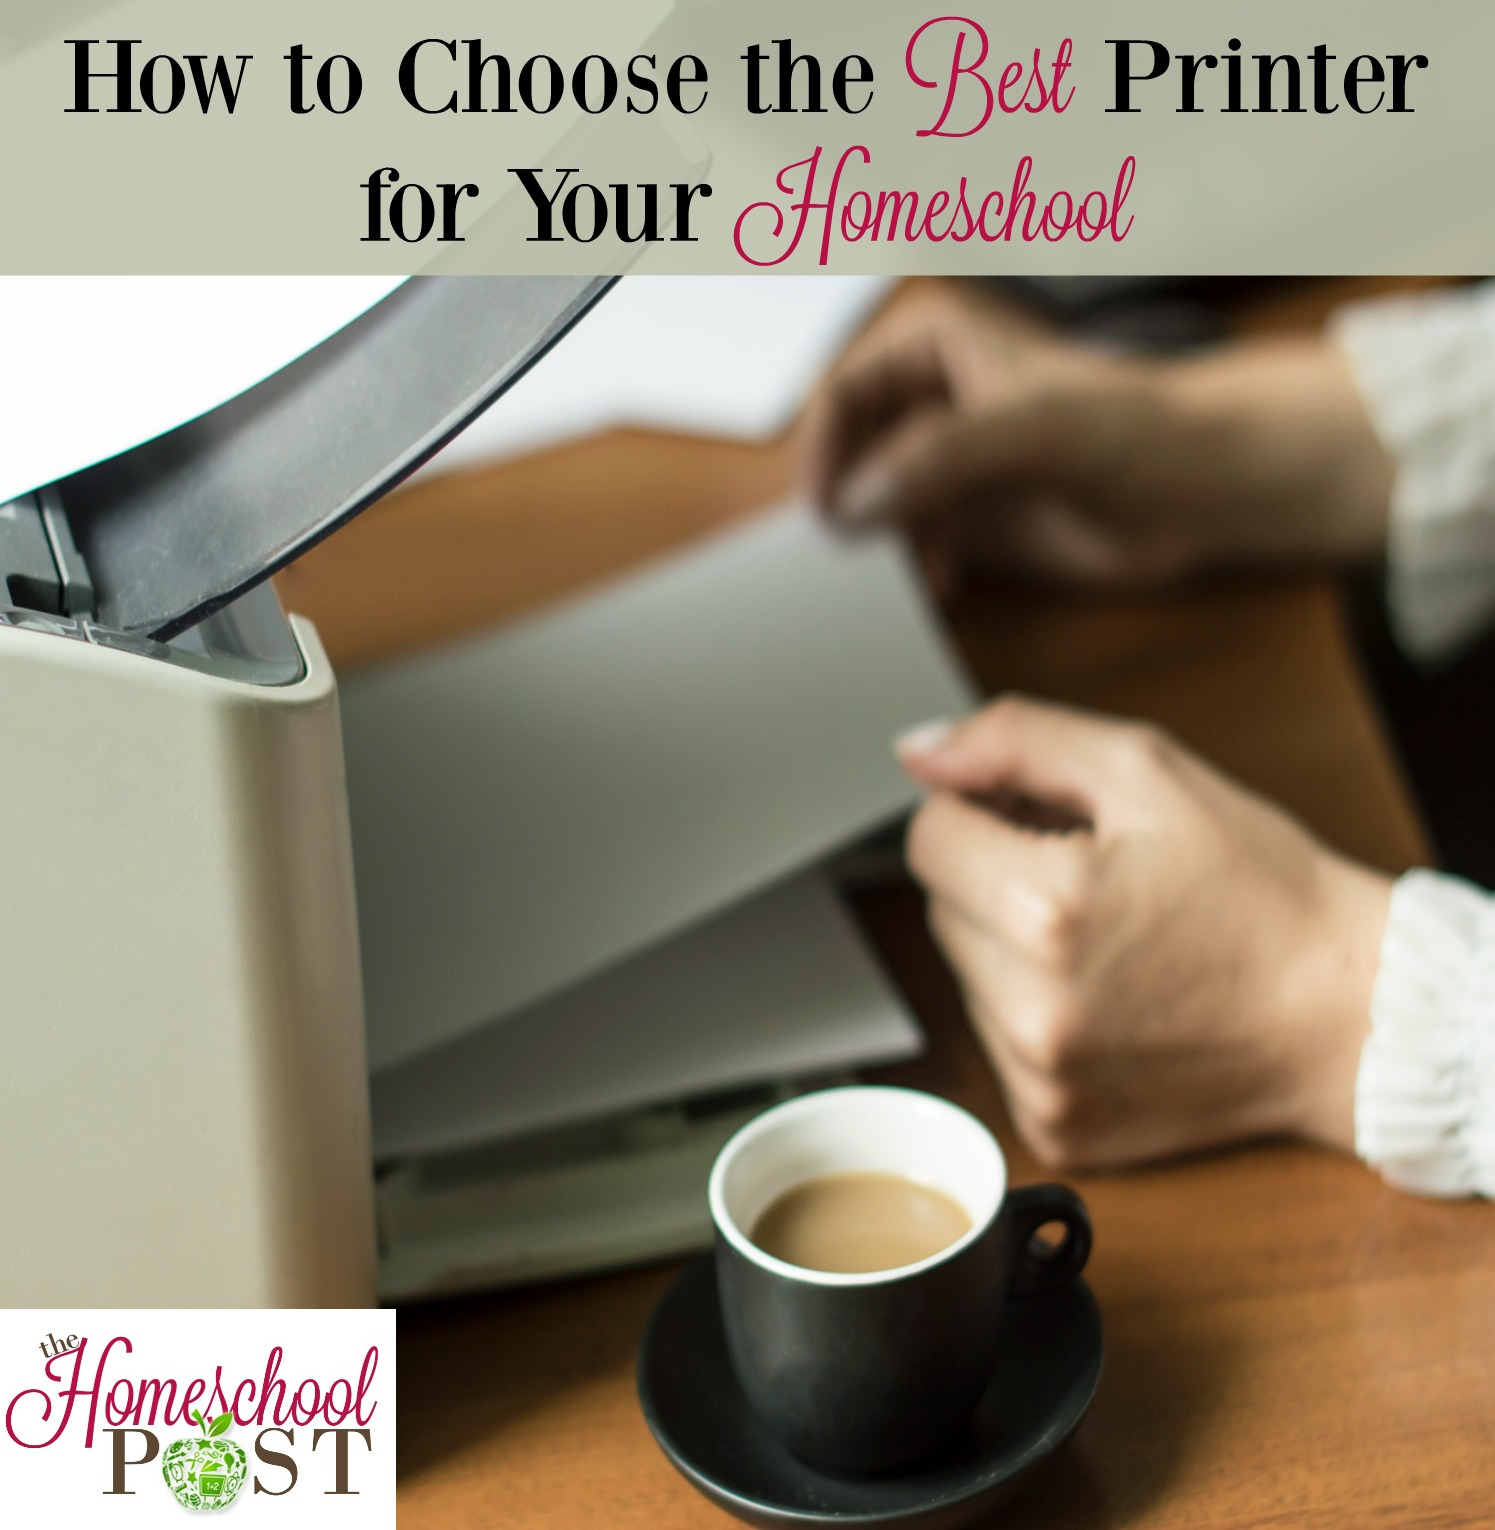 How to choose the best printer for your homeschool | homeschool printing | homeschool printing tips | homeschool printer